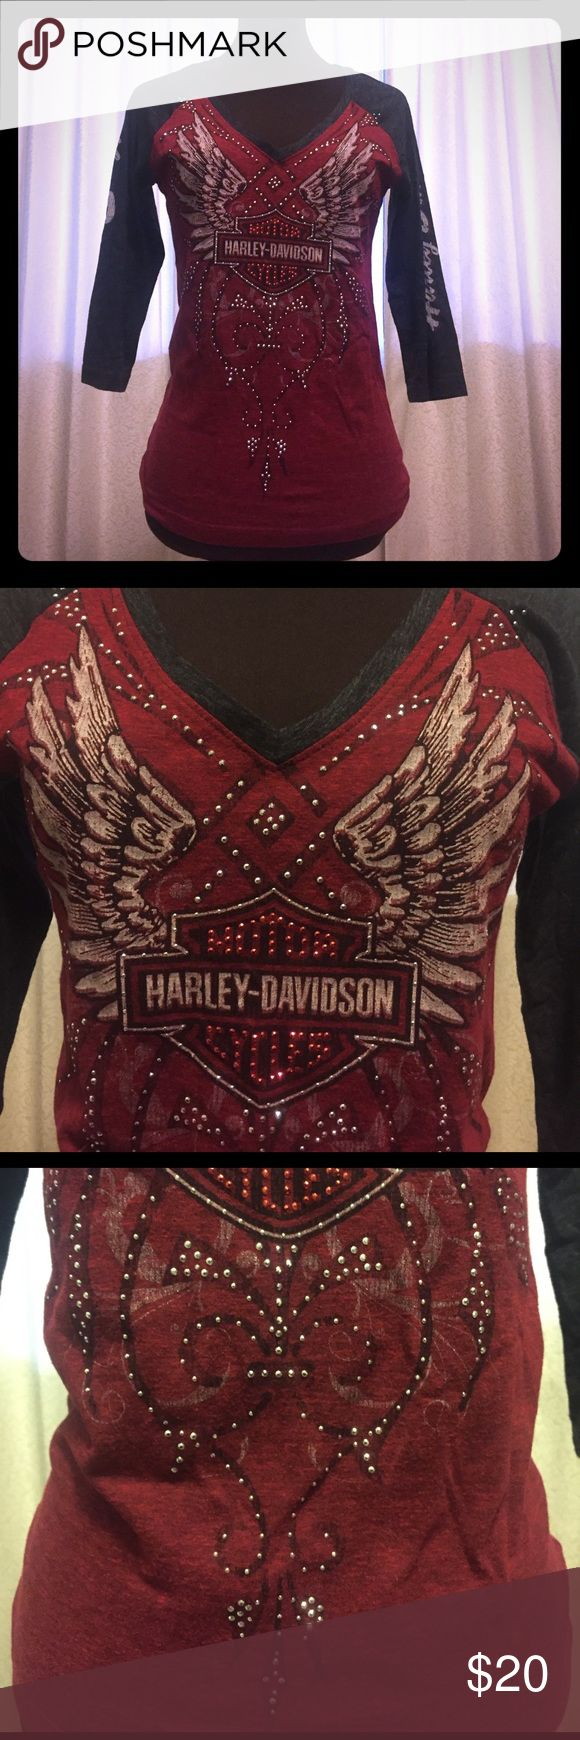 "NWOT: H-D Burgundy & Charcoal T-shirt - 3/4 Sleeve NWOT: Cool & feminine Harley Davidson ladies burgundy and charcoal 3/4 Sleeve t-shirt with silver Metallic sequin accents. Booth sleeves say ""Harley Davidson"" and the shirt is from Sturgis South Dakota dealership. Got as a gift, but too small. 50% polyester, 38% cotton, 12% rayon. Harley-Davidson Tops Tees - Long Sleeve"